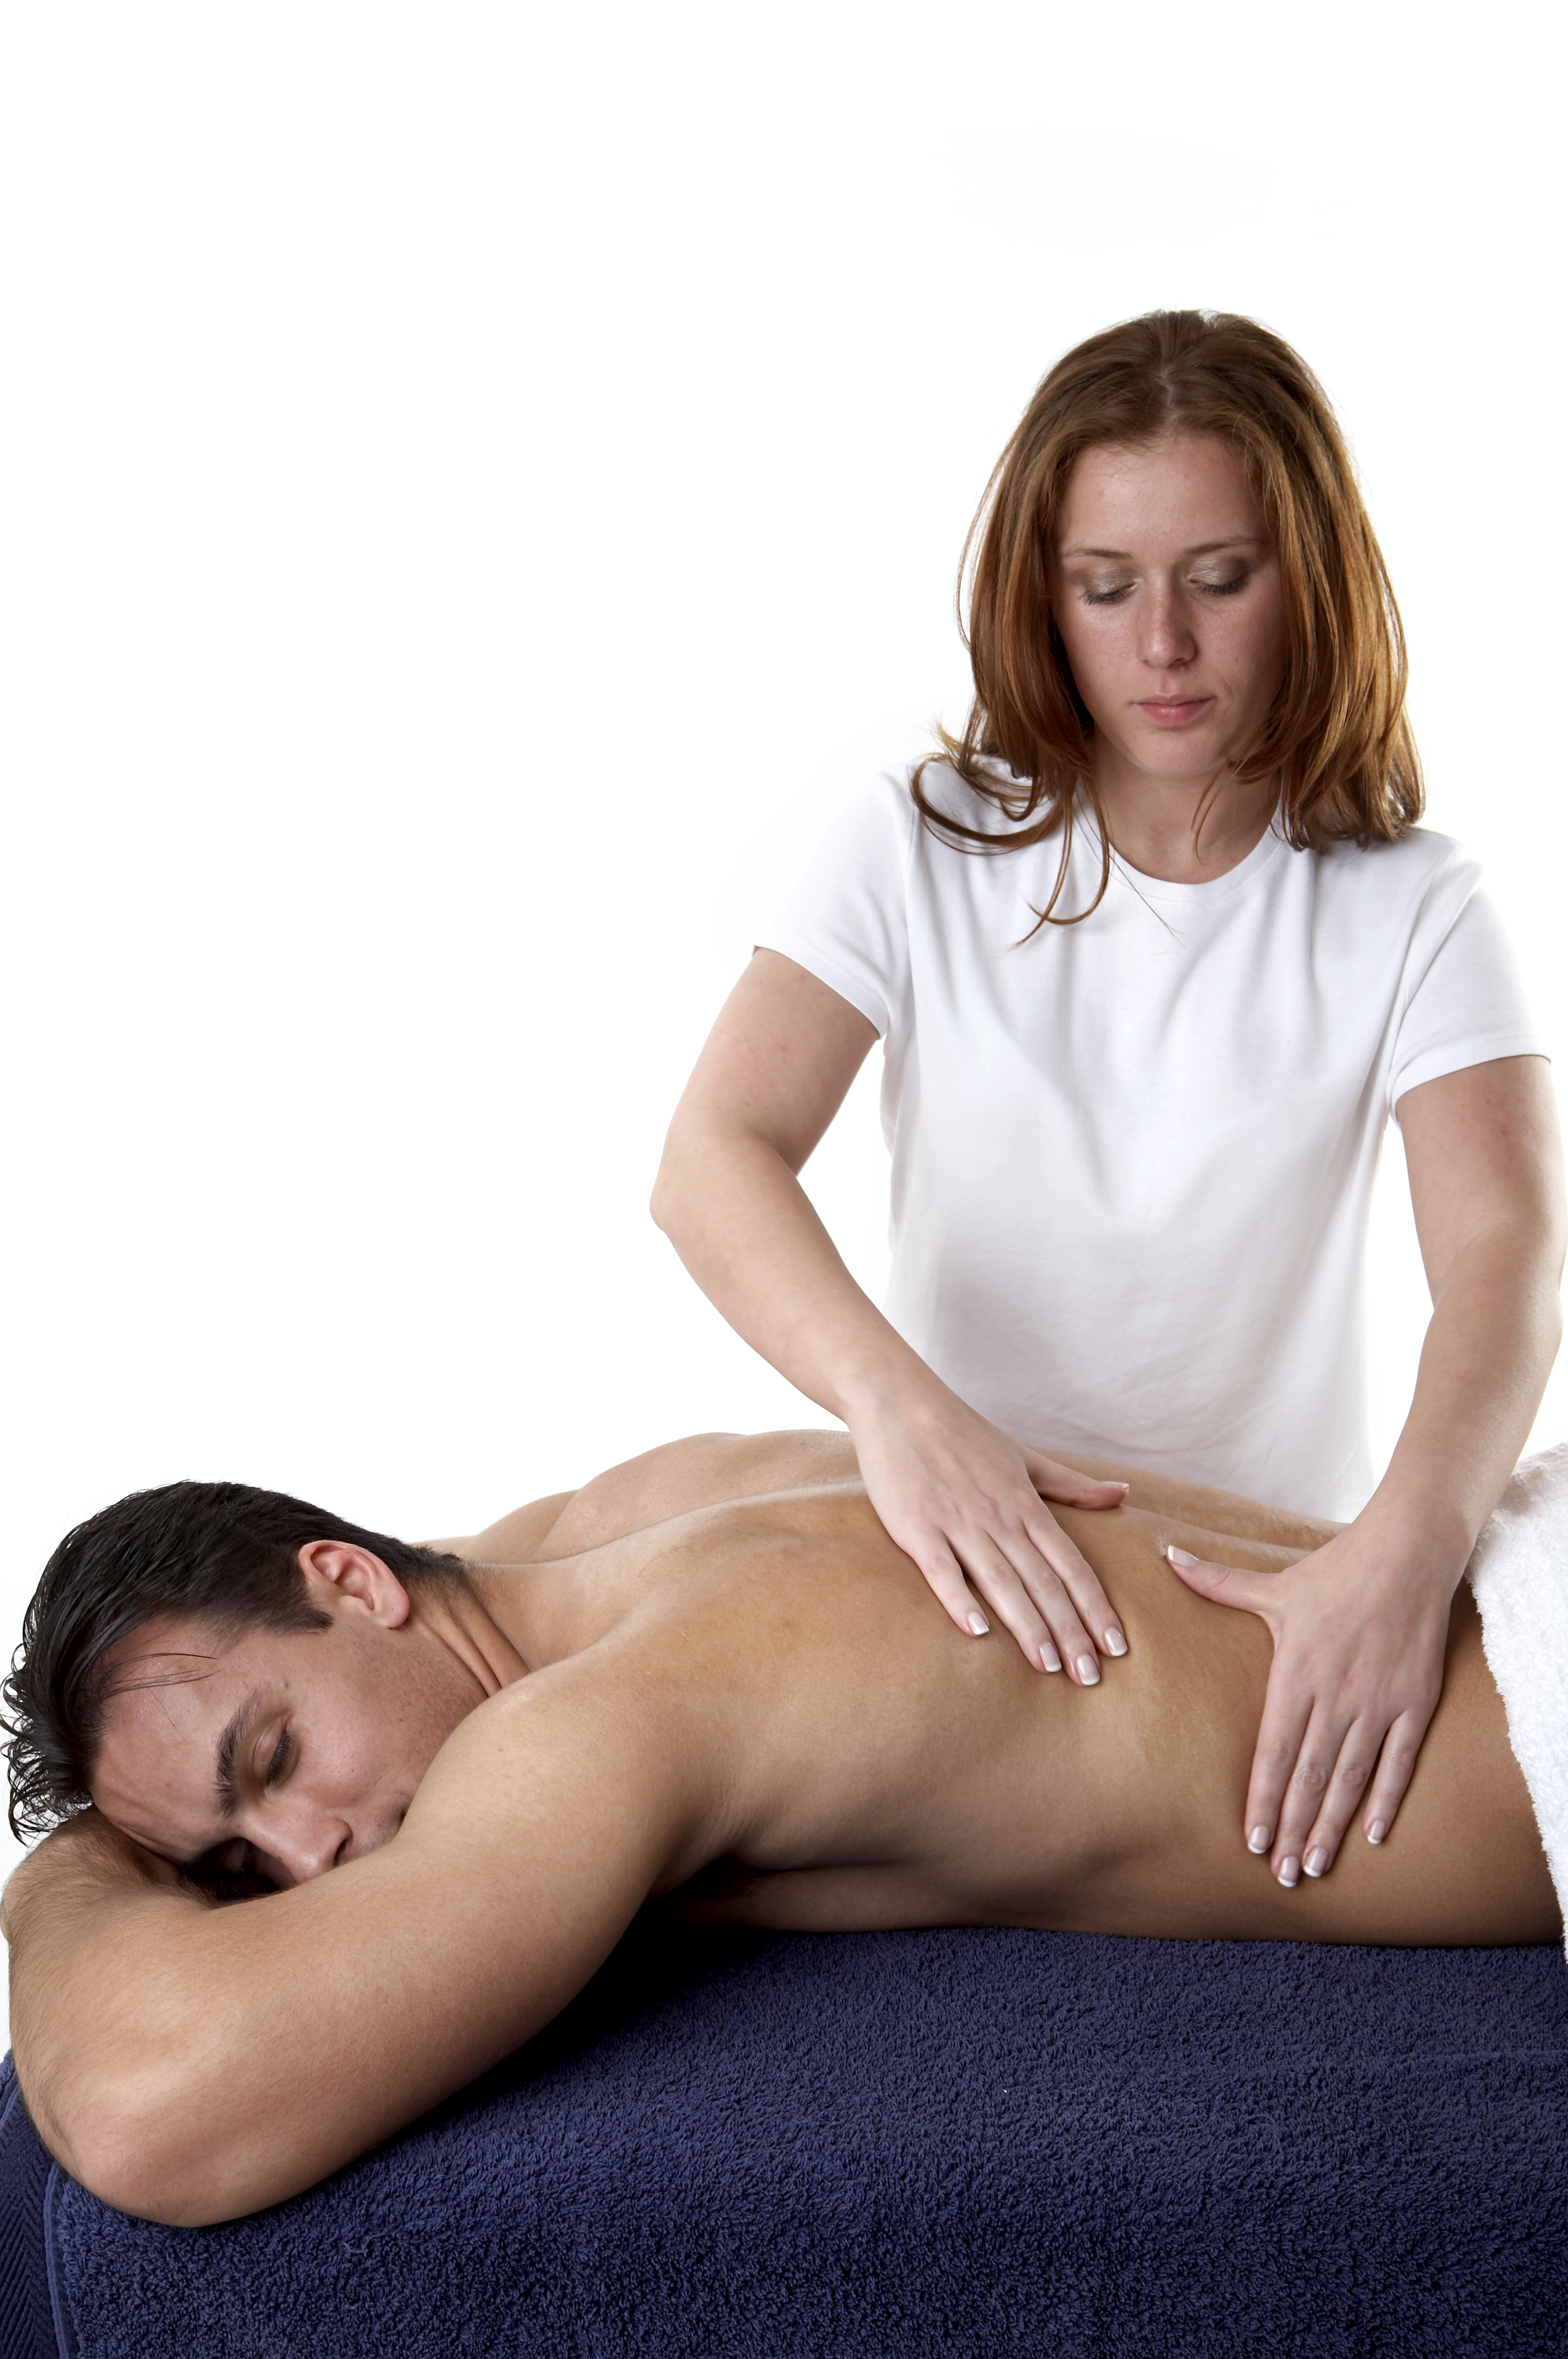 Sports Massage in Reading. Are you training for the Reading Half Marathon?